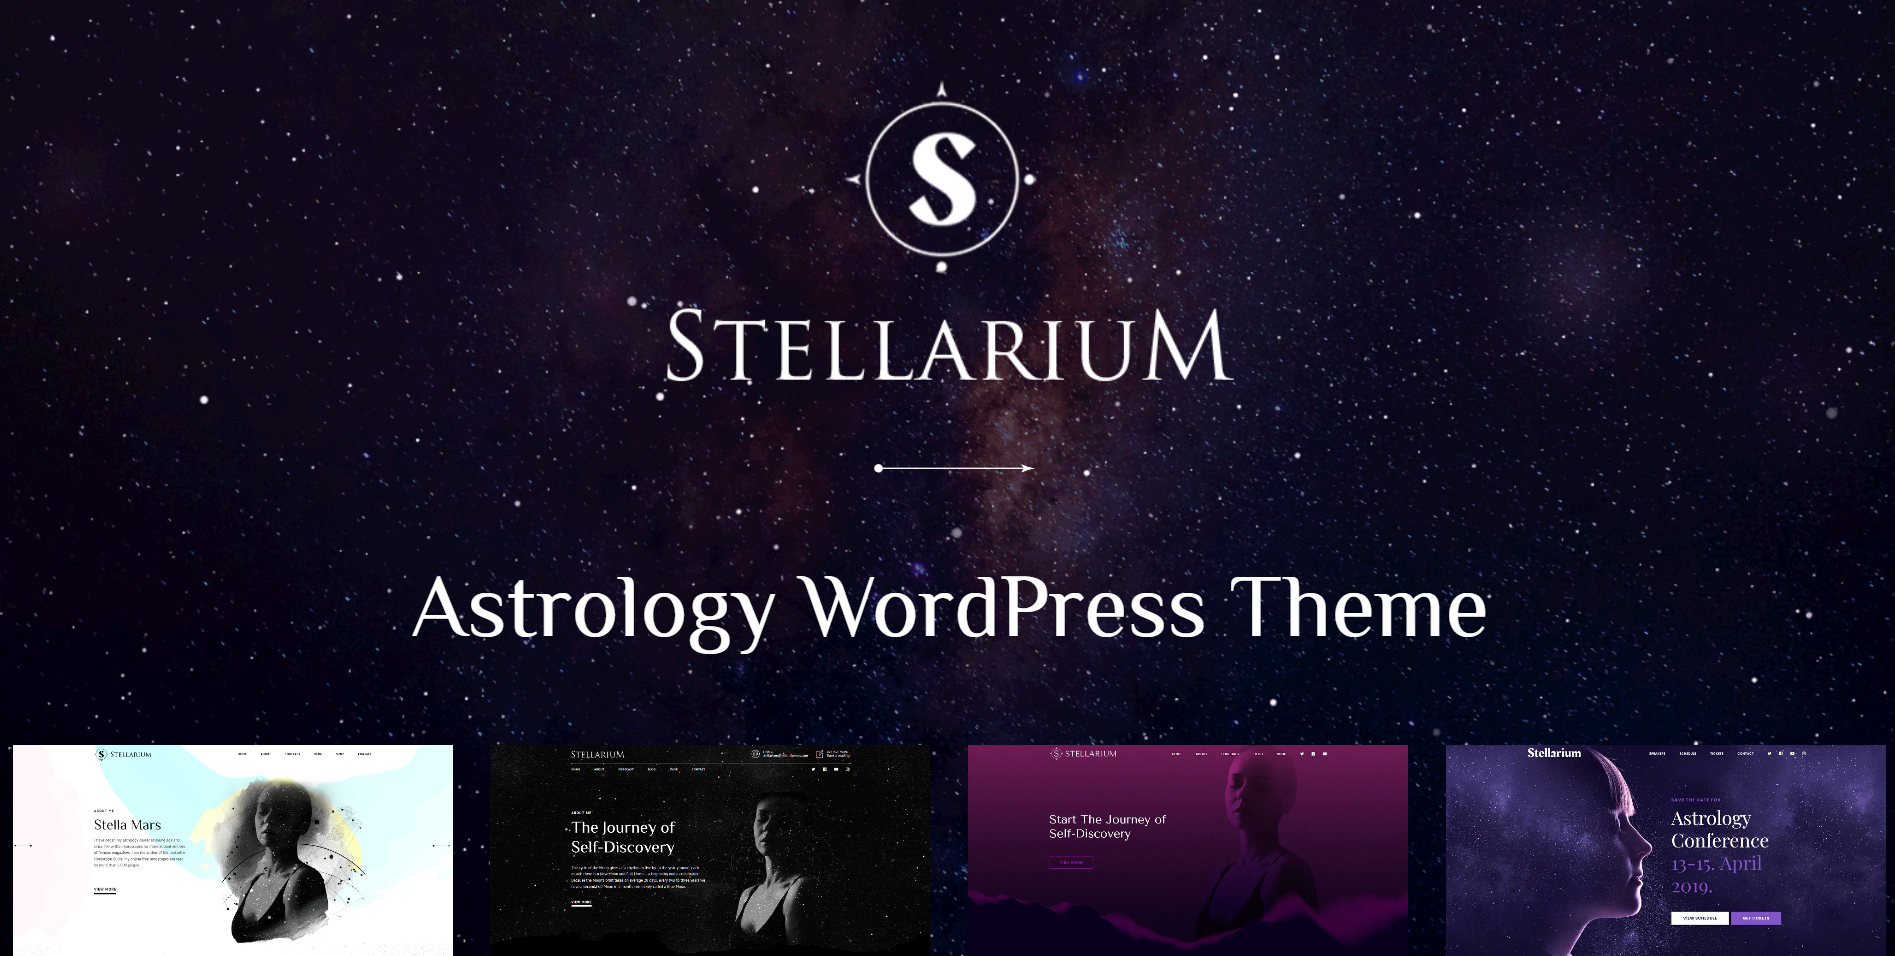 30. Stellarium - Horoscope and Astrology WordPress Theme